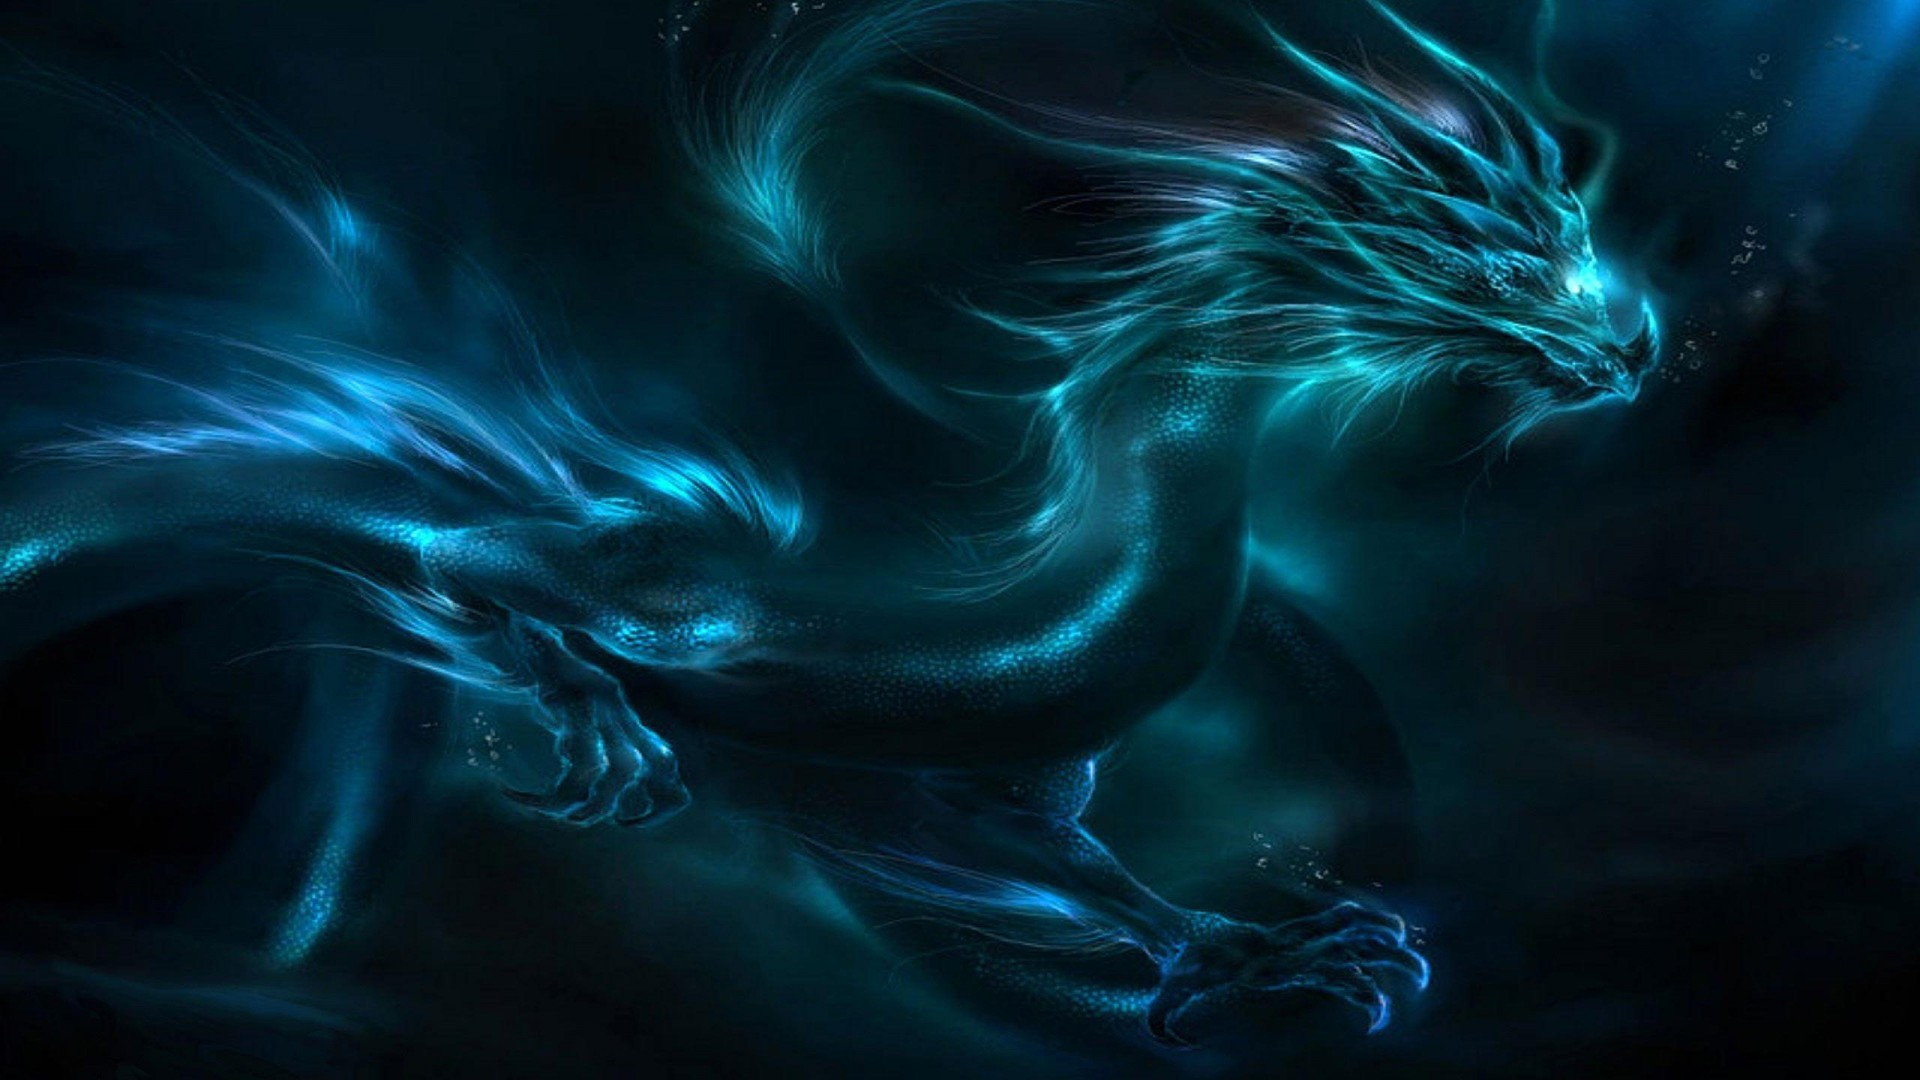 Dragon wallpapers best wallpapers dragon hd wallpaper voltagebd Gallery